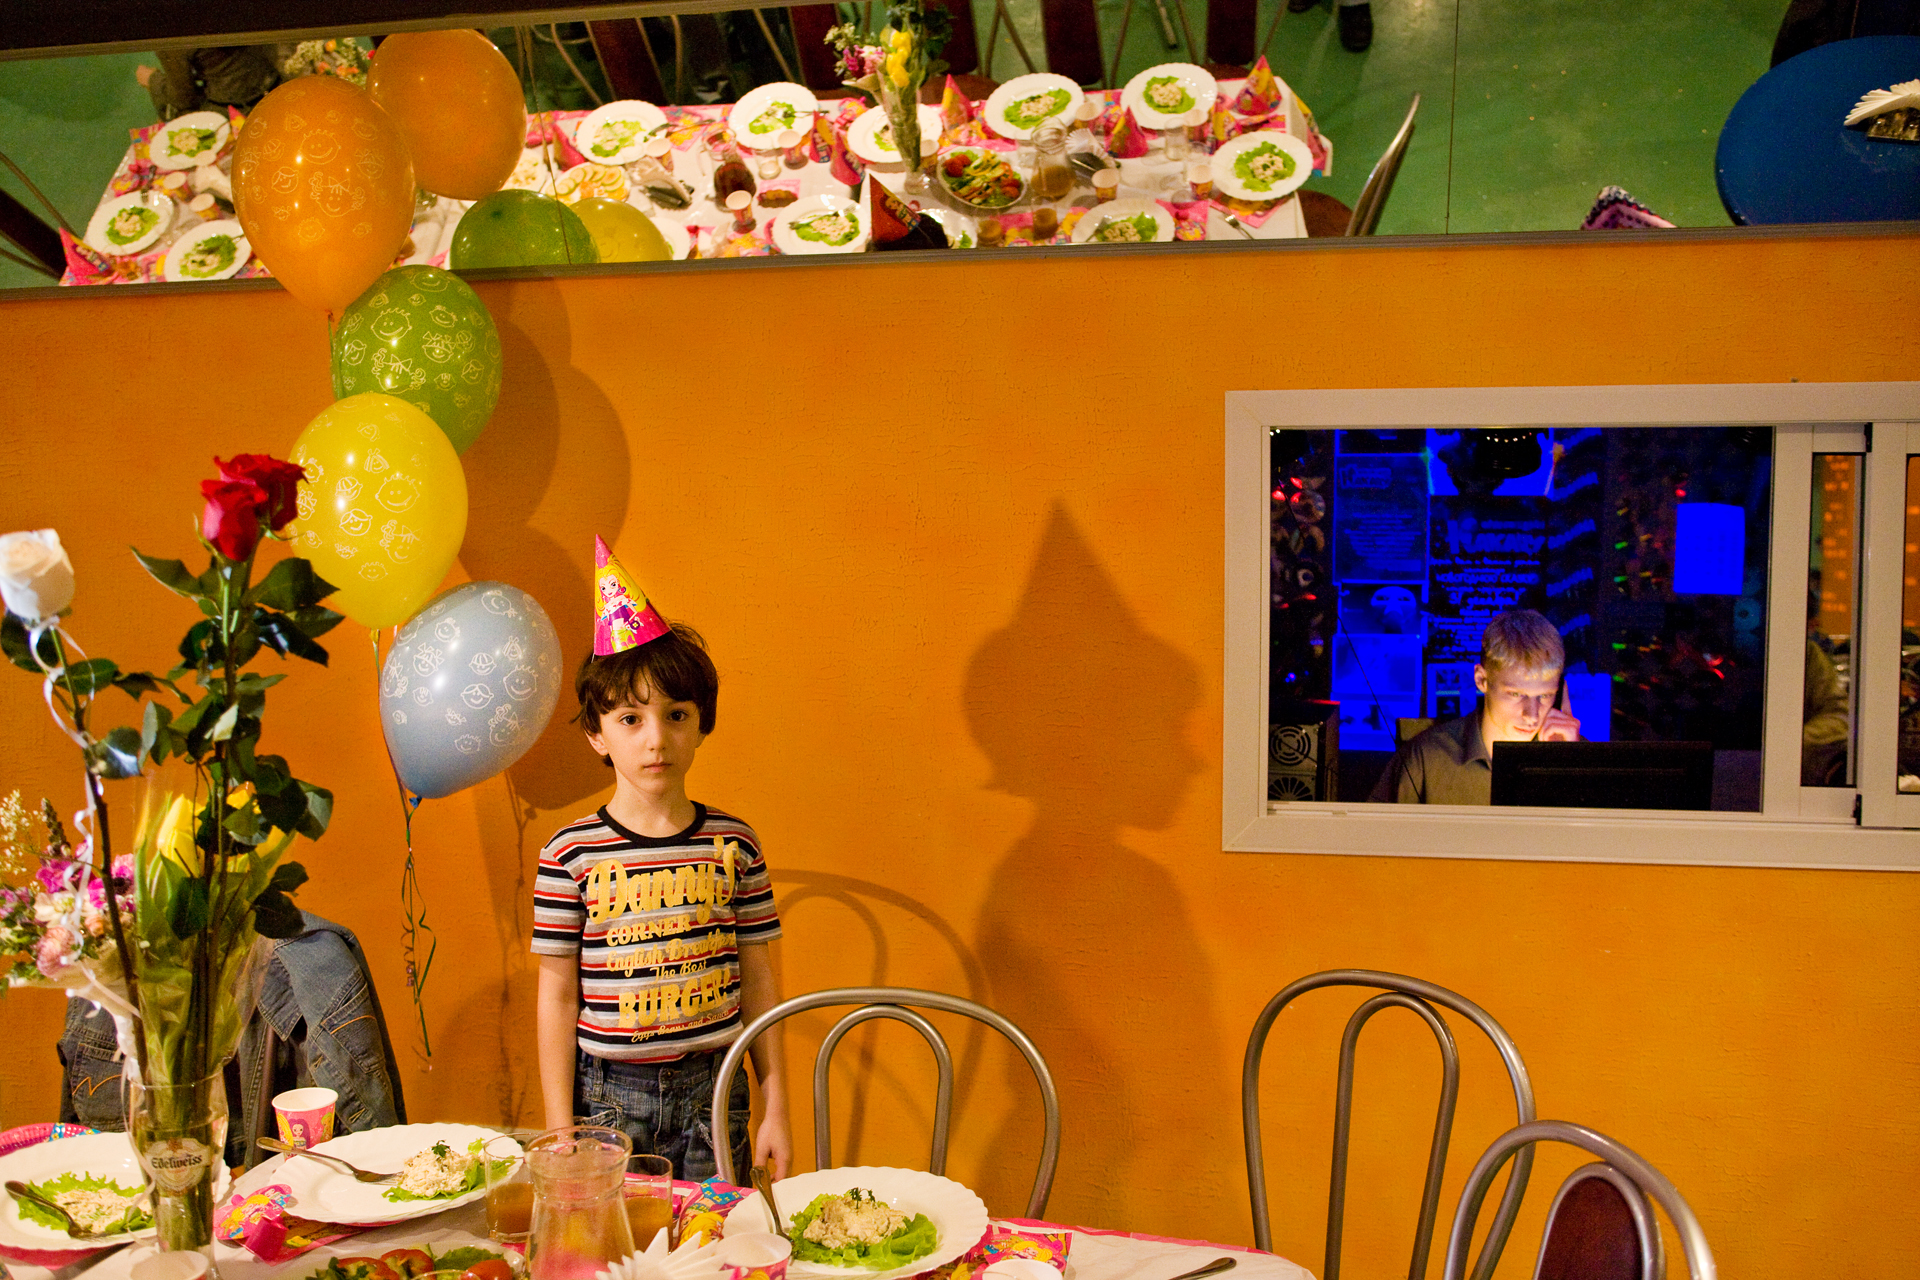 Overwhelmed by a lavish birthday party at the new Orange Parrot Entertainment Center, a young guest pauses during the state-of-the-art celebration.  Surgut, Russia